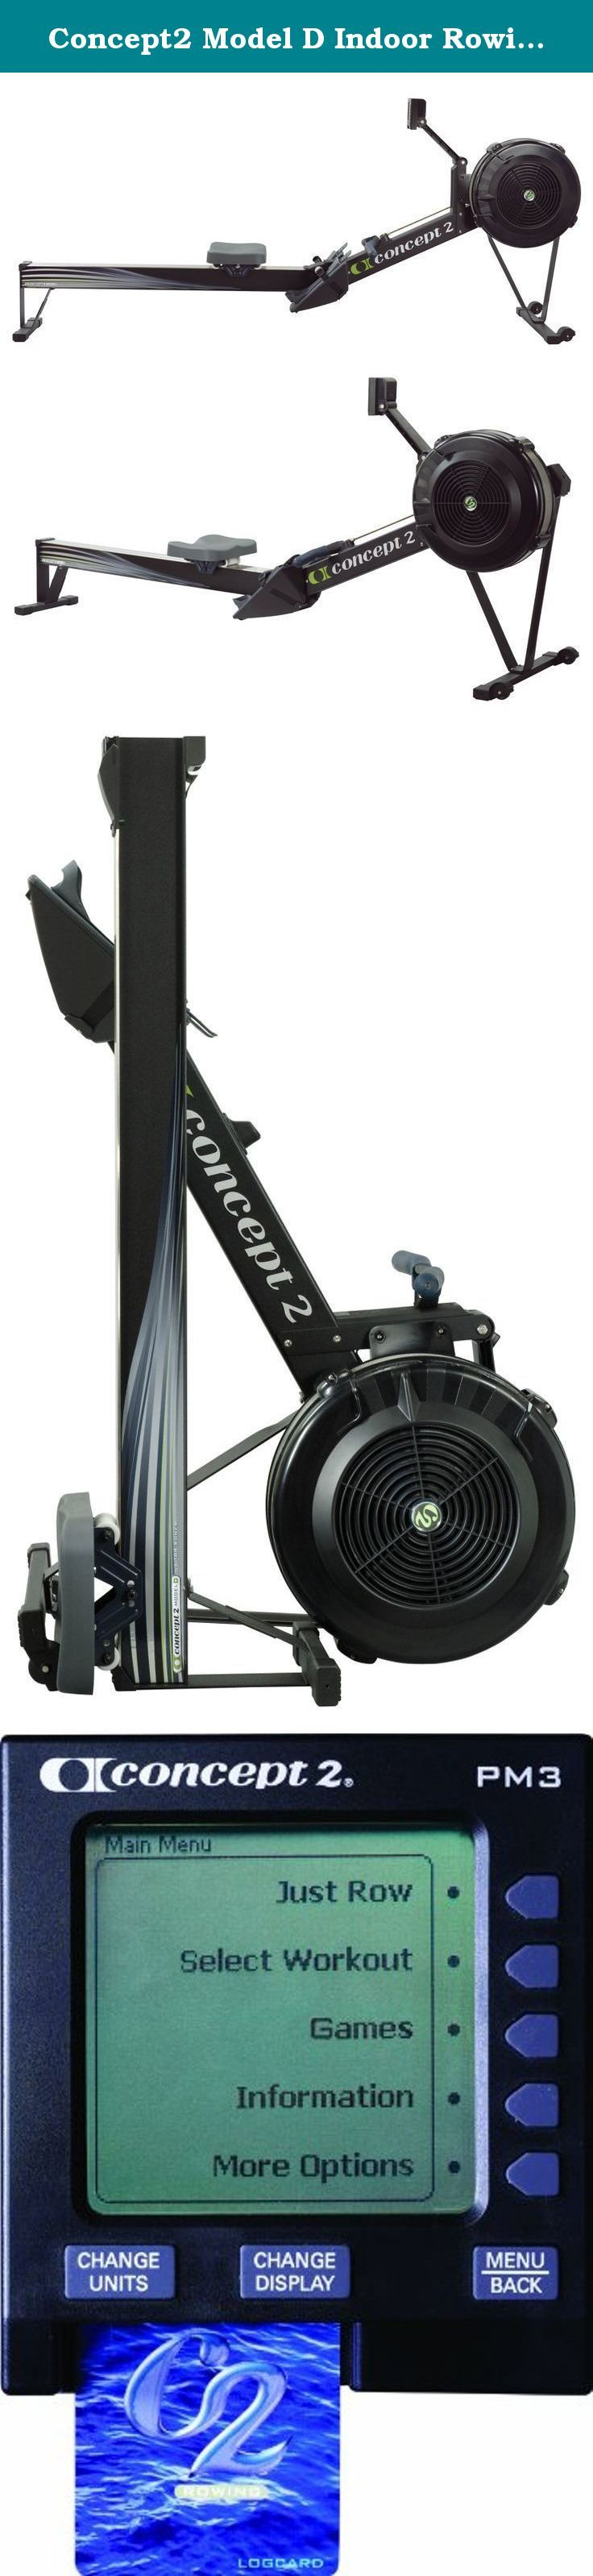 Concept2 Model D Indoor Rowing Machine with PM3 (Black). The dependable performance of the Concept2 Model D Indoor Rower has made it the bestselling indoor rower in the world. Recognized by competitive rowers as the standard for indoor training, the Model D delivers an effective cardiovascular workout that will increase your fitness level and tone your physique. At a fraction of the cost of other home fitness equipment or a yearly gym membership, you can have the luxury of working out in...